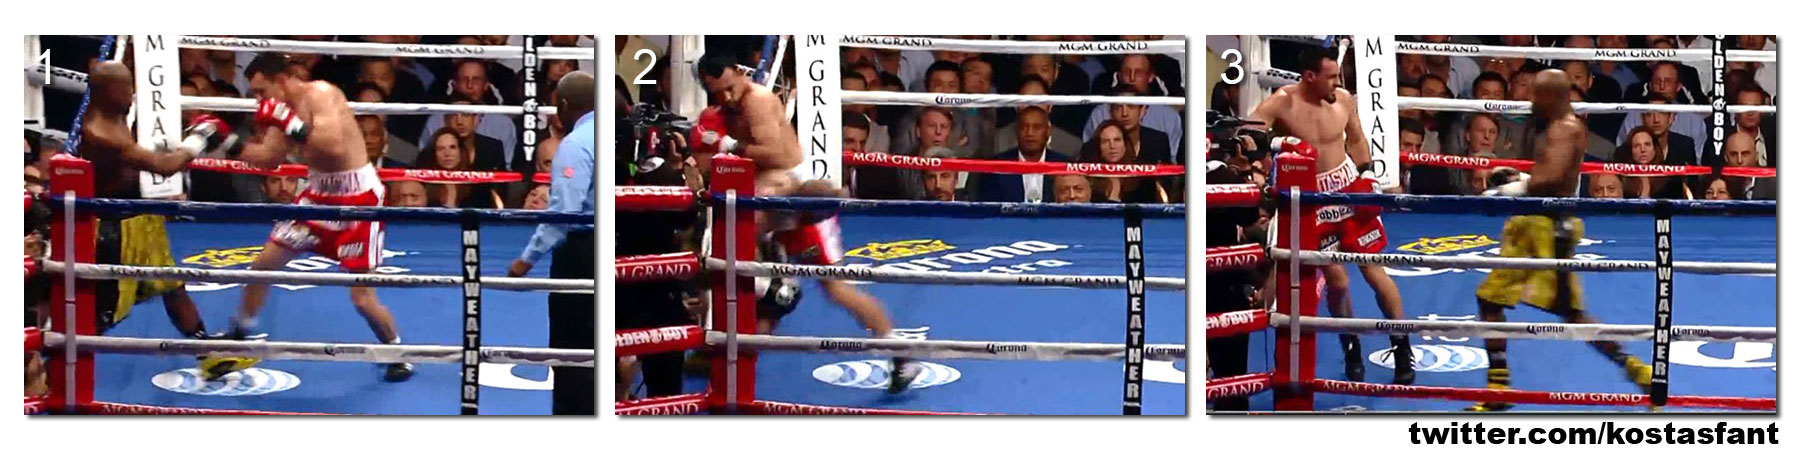 Floyd Mayweather Jr. vs. Robert Guerrero